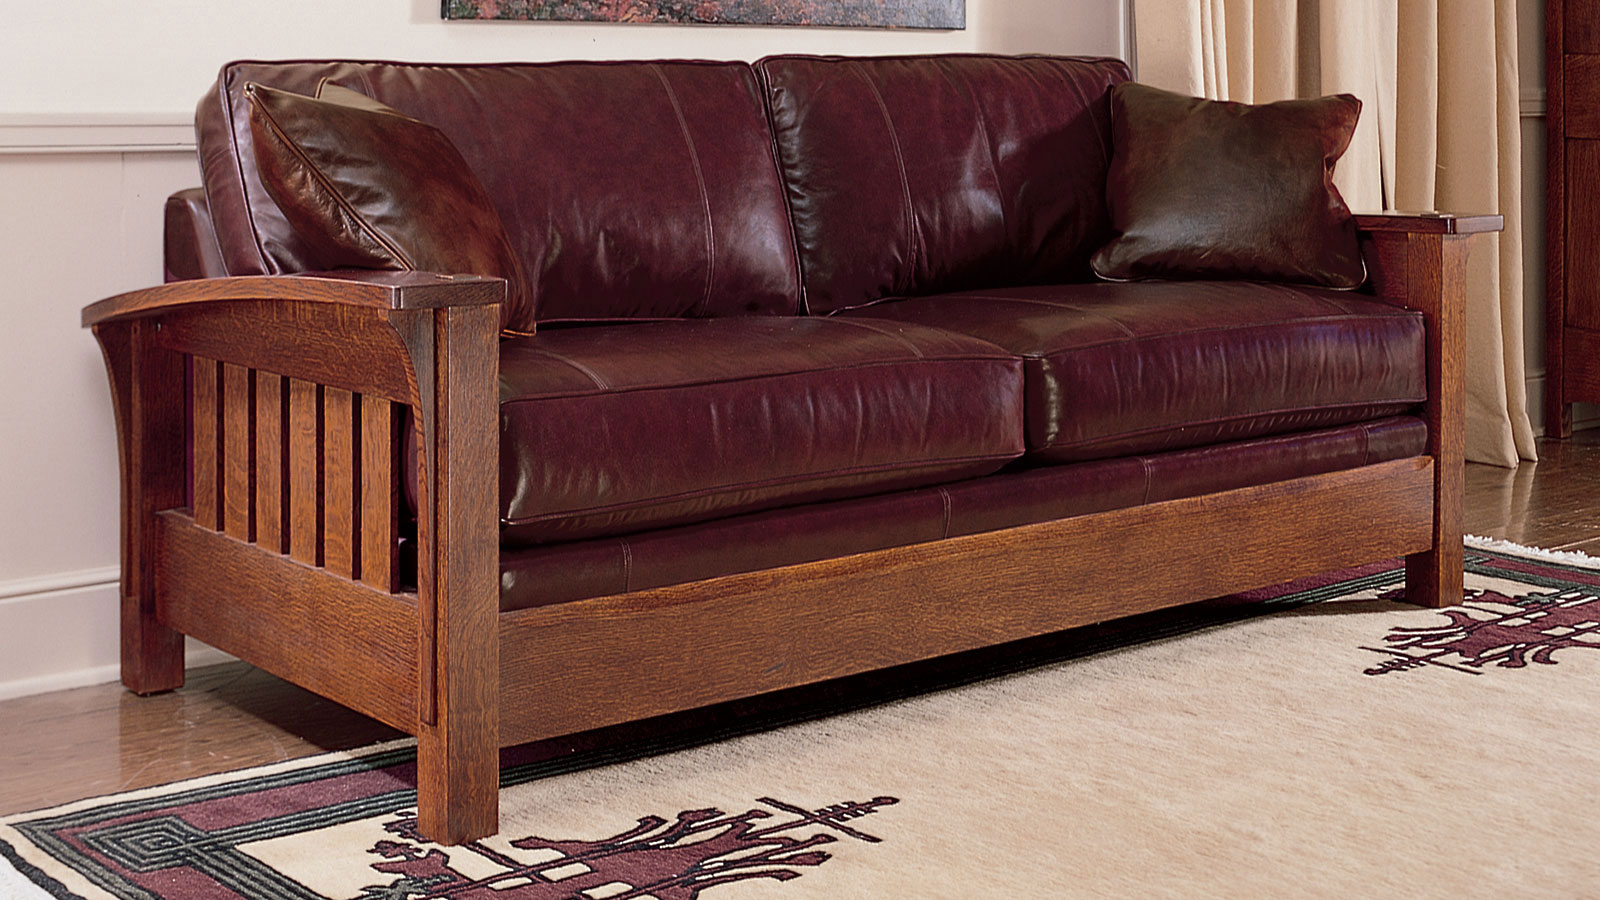 Brown Real Leather Couch Stickley Orchard Street Leather Sofa